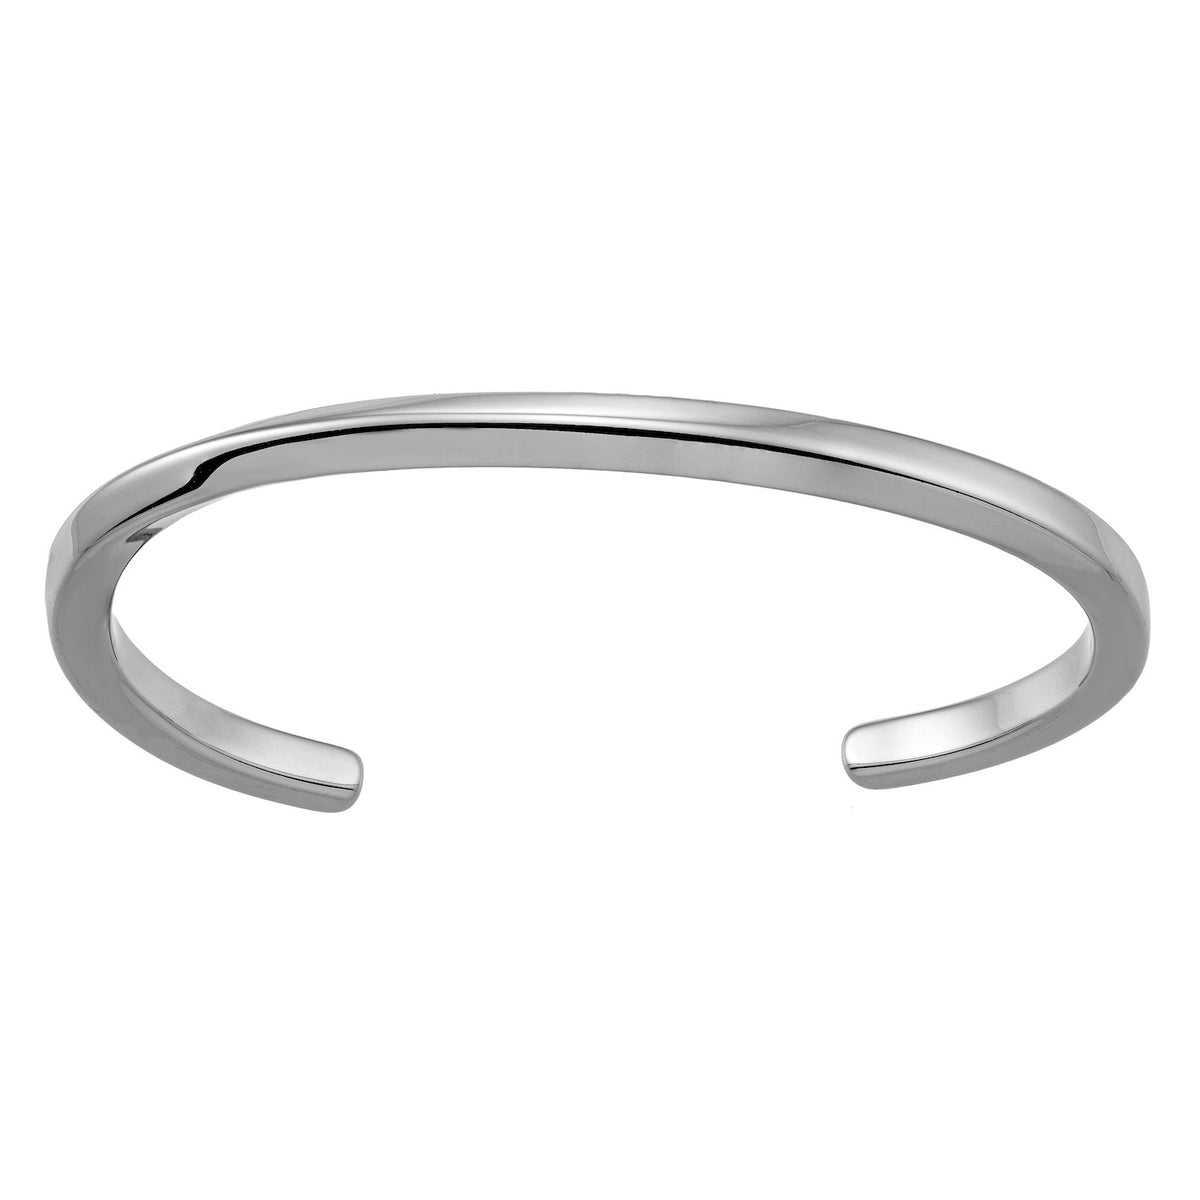 Aeon | Madrid Bangle | Stainless Steel